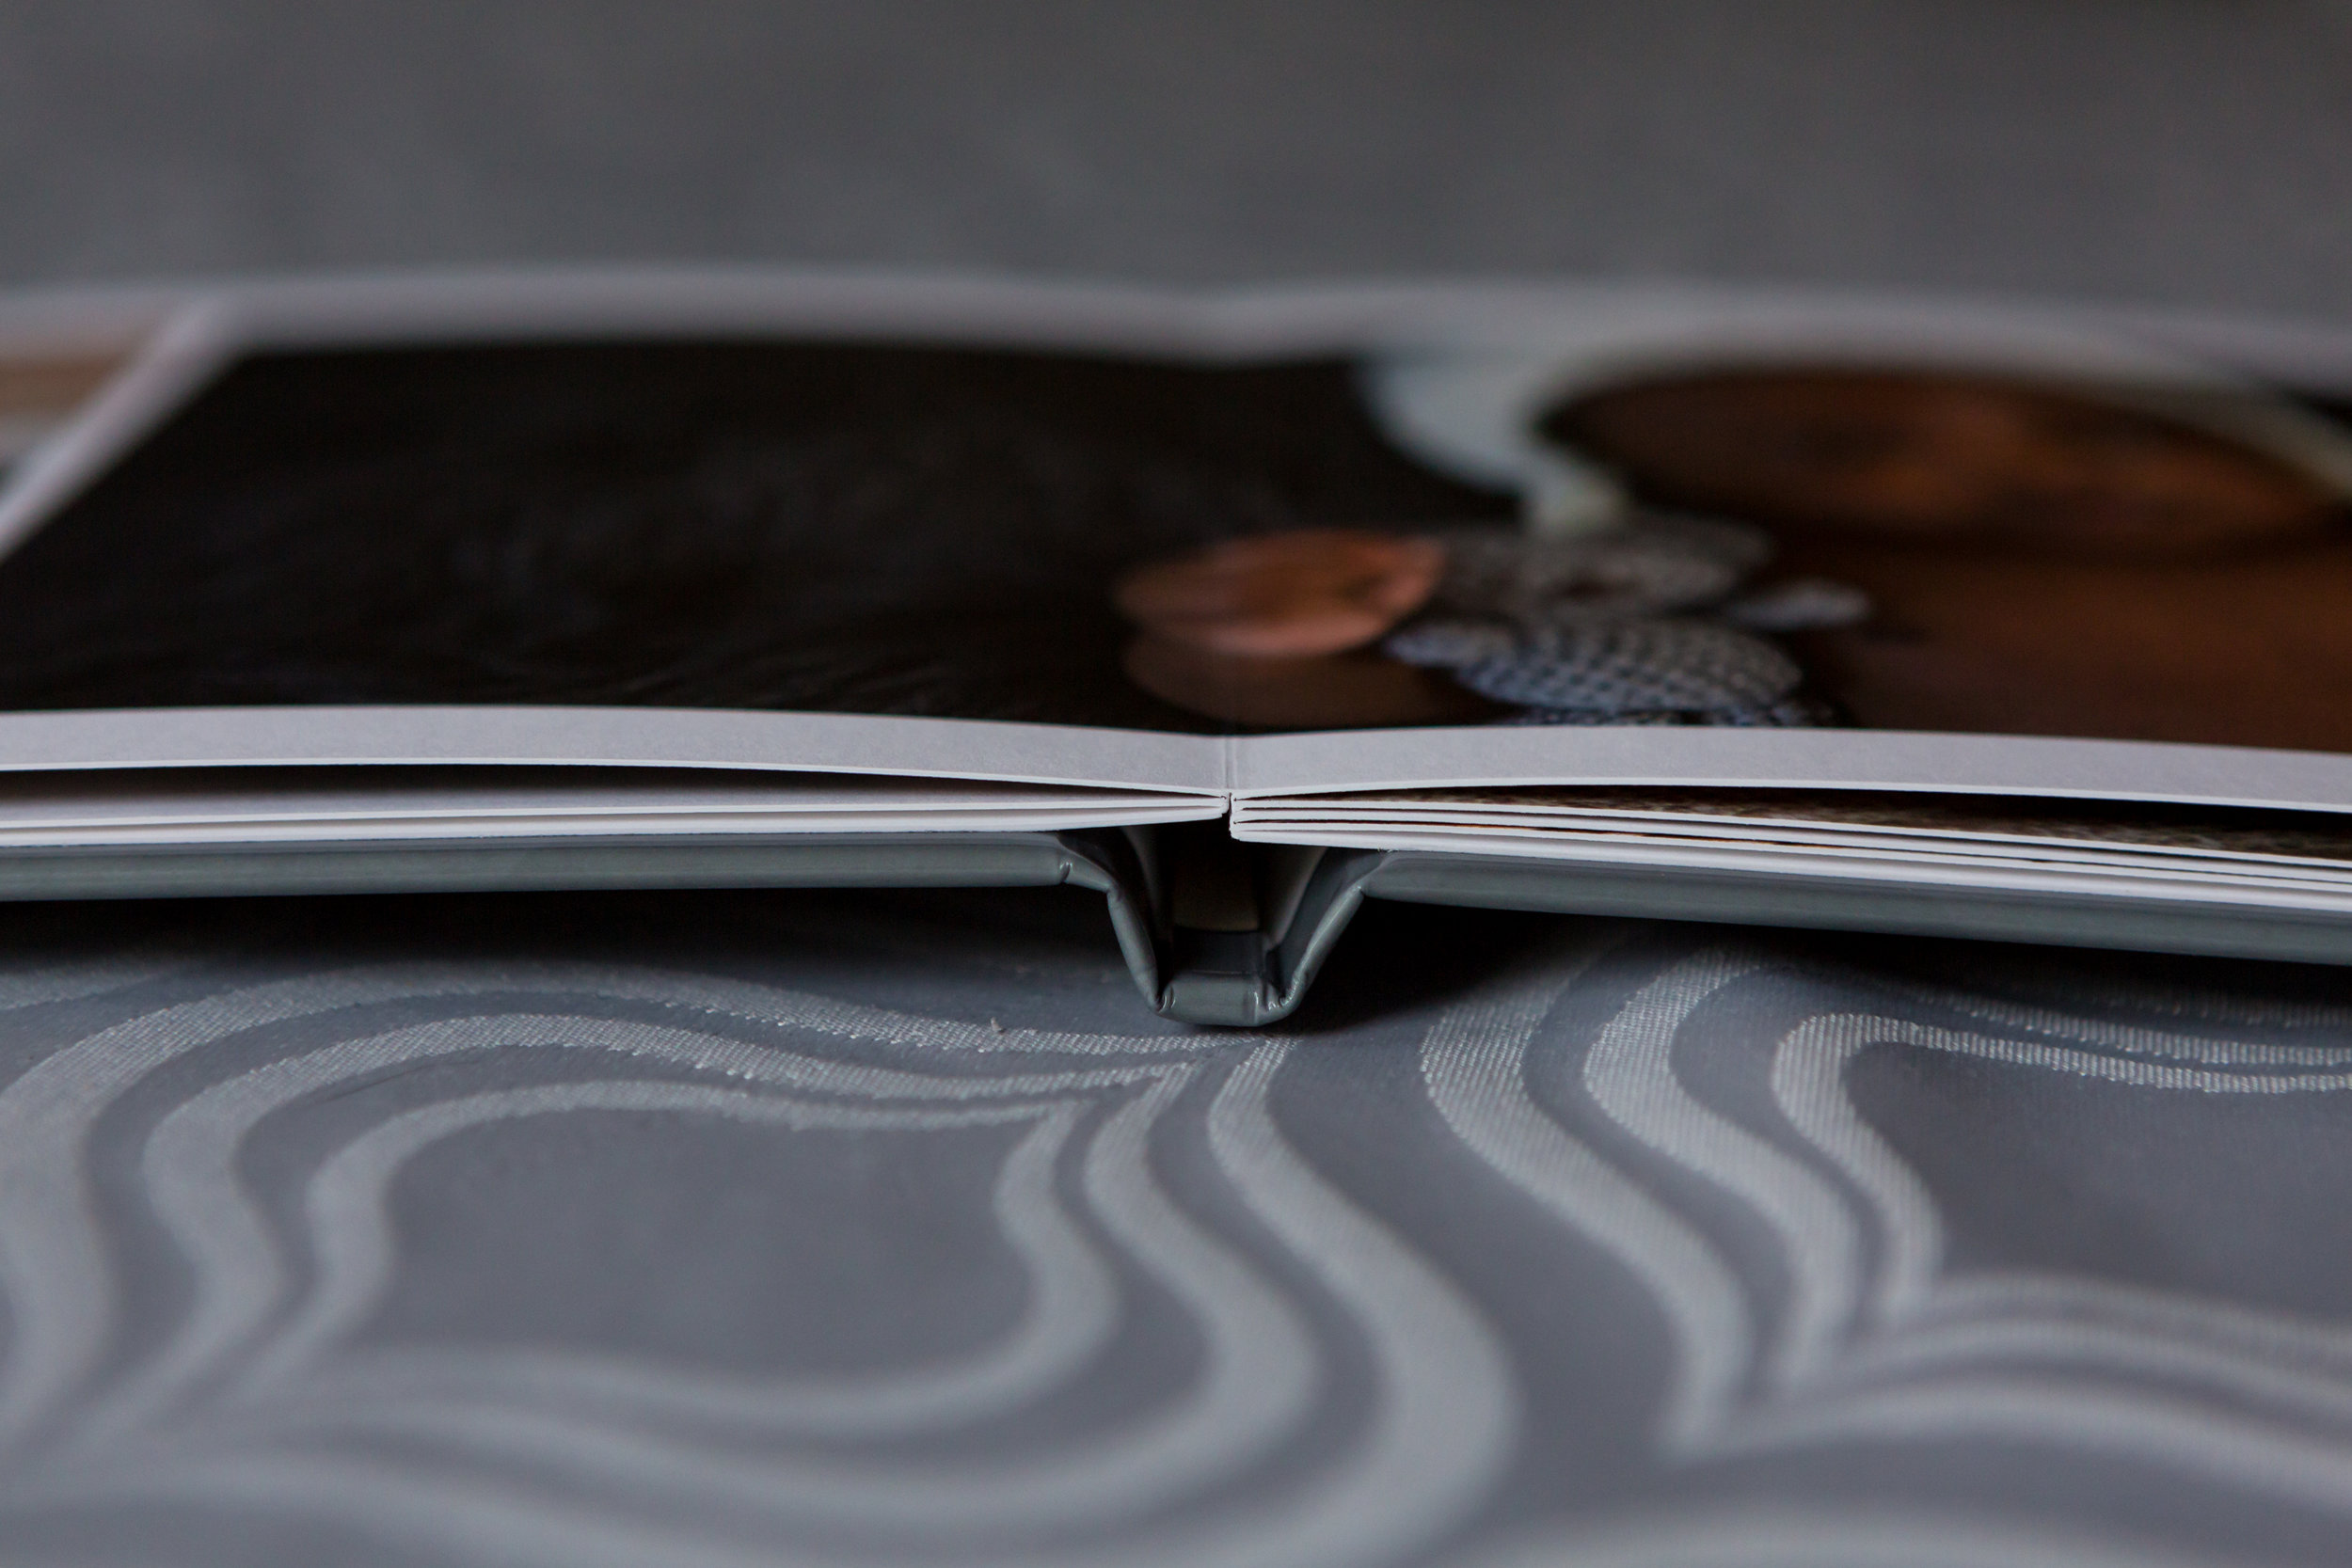 Lay Flat, Thicker Pages (Matte Paper Shown)